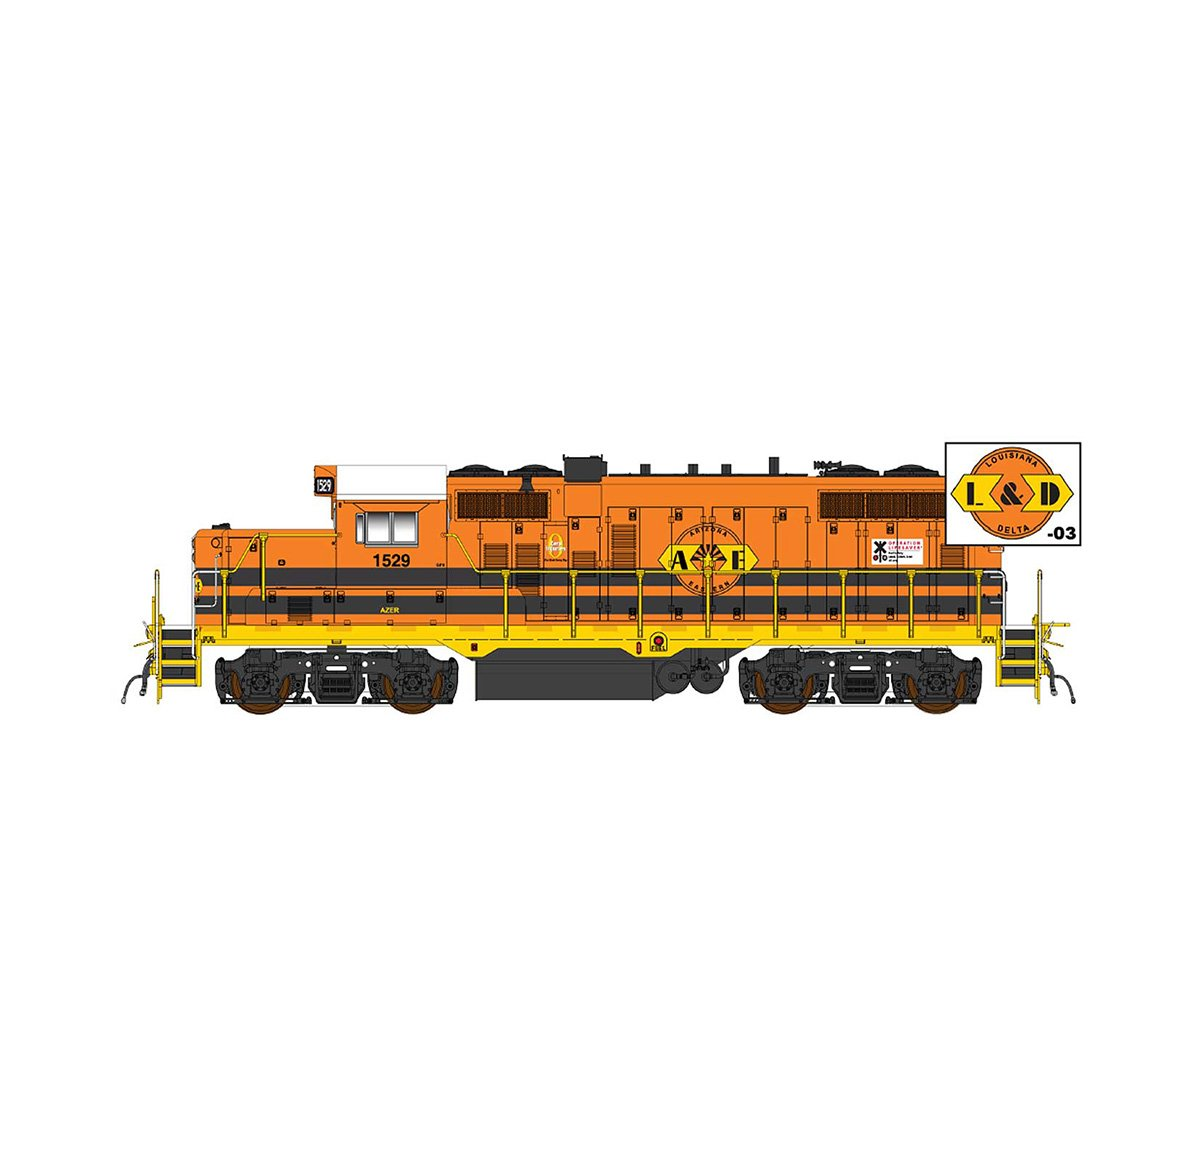 InterMountain 49871-01, HO EMD GP10 Paducah DCC, G&W/A&E #1529